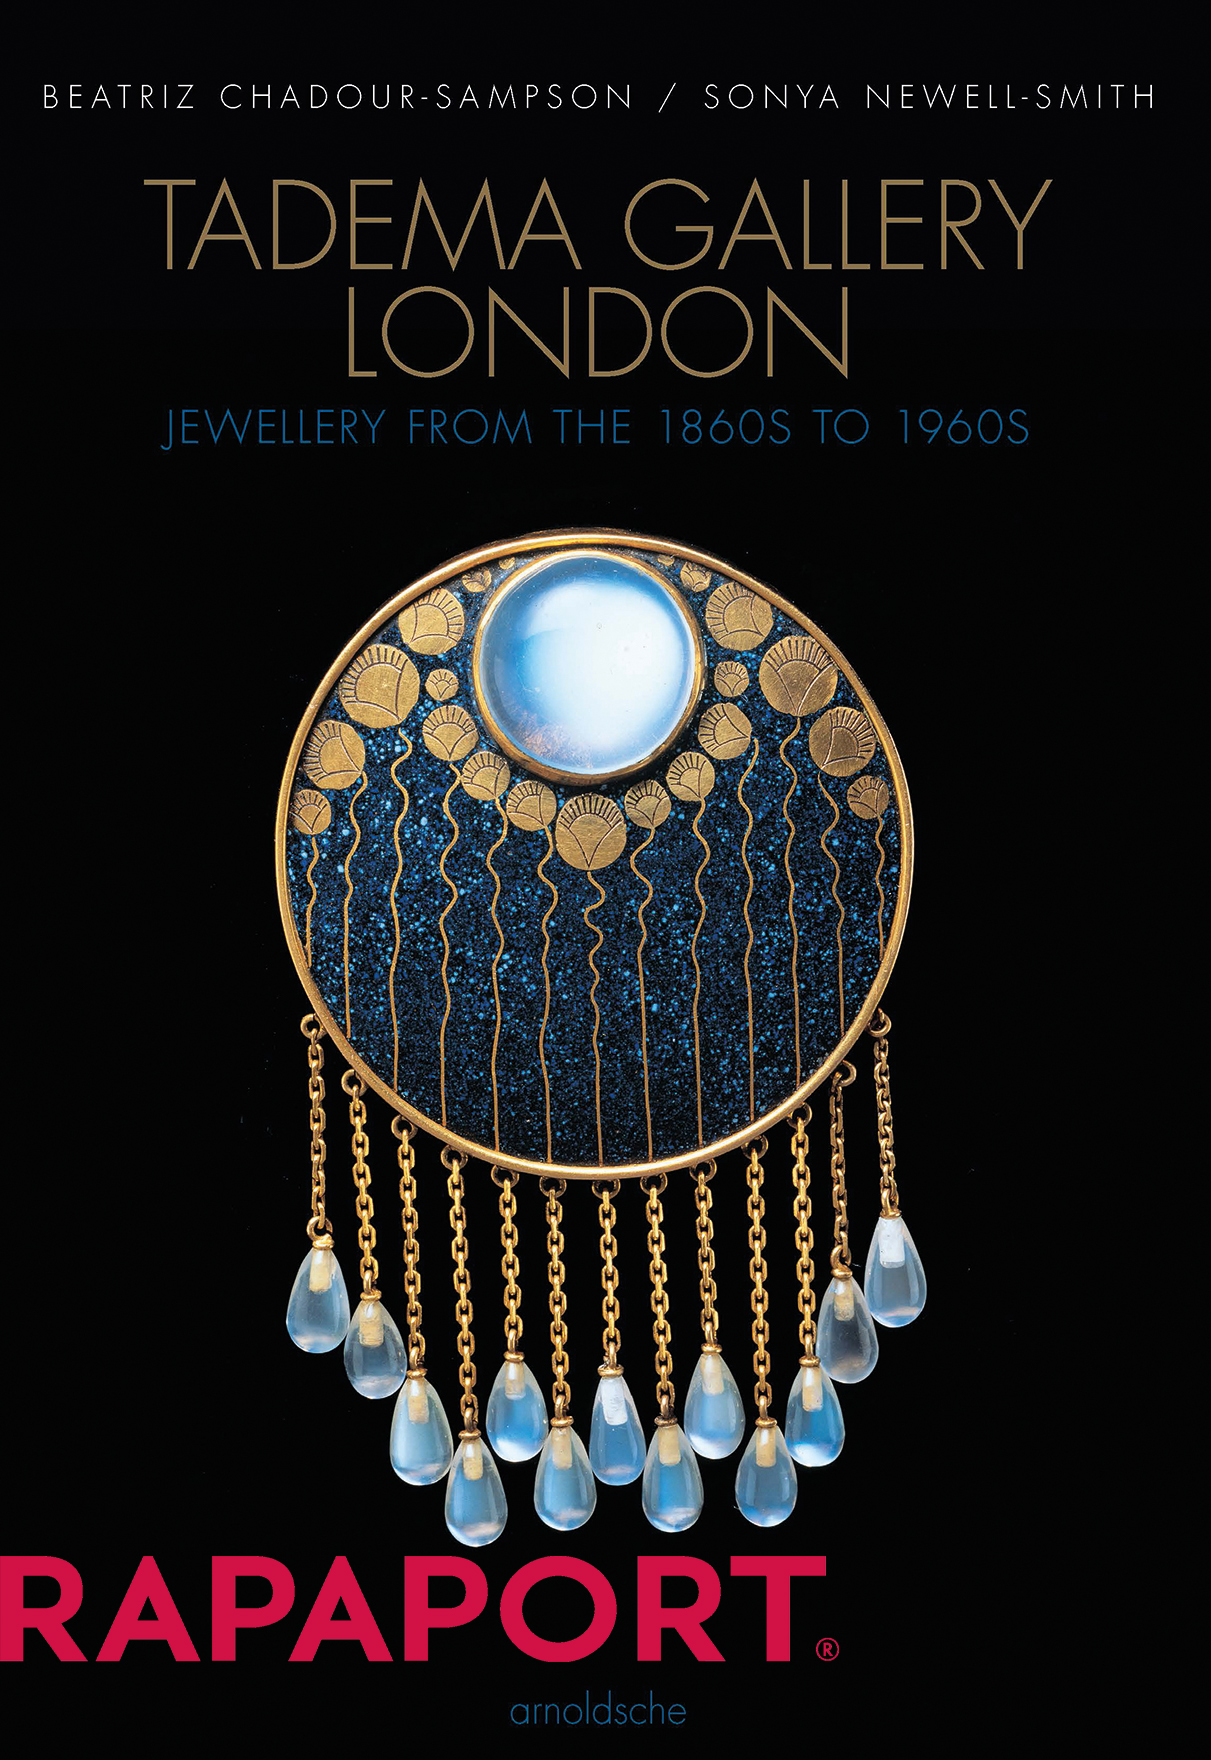 Tadema Gallery showed jewels from significant designers of the Revivalist, Art Nouveau, Arts & Crafts, Jugendstil, Art Deco, and Modernist movements.